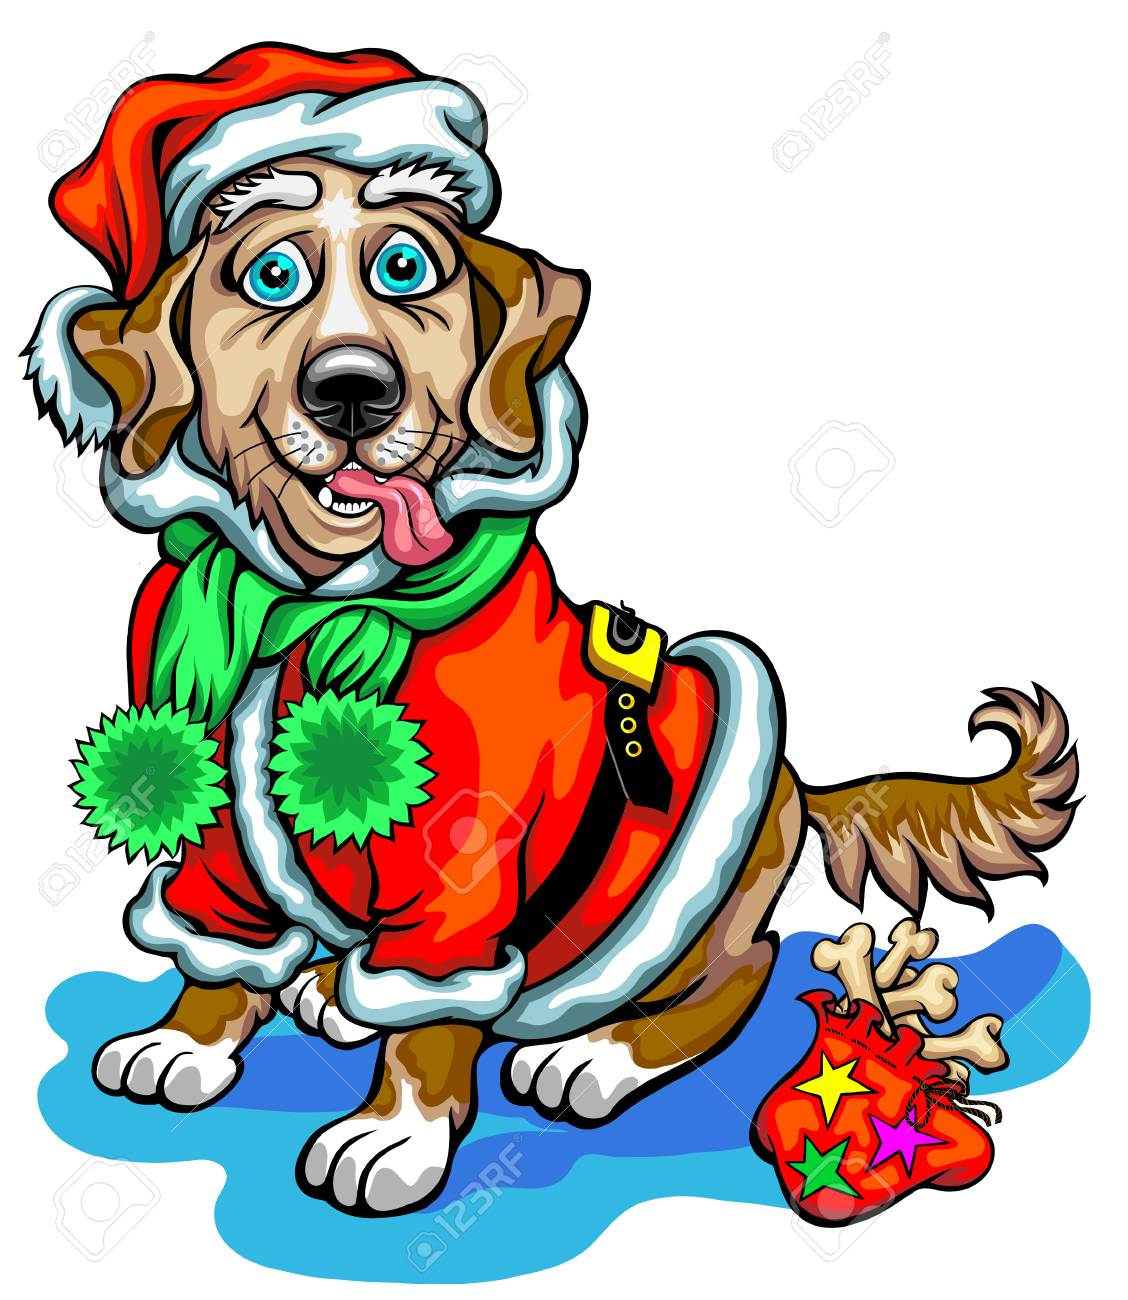 Dog With Christmas Gifts In The Image Of Santa Claus. Christmas ...